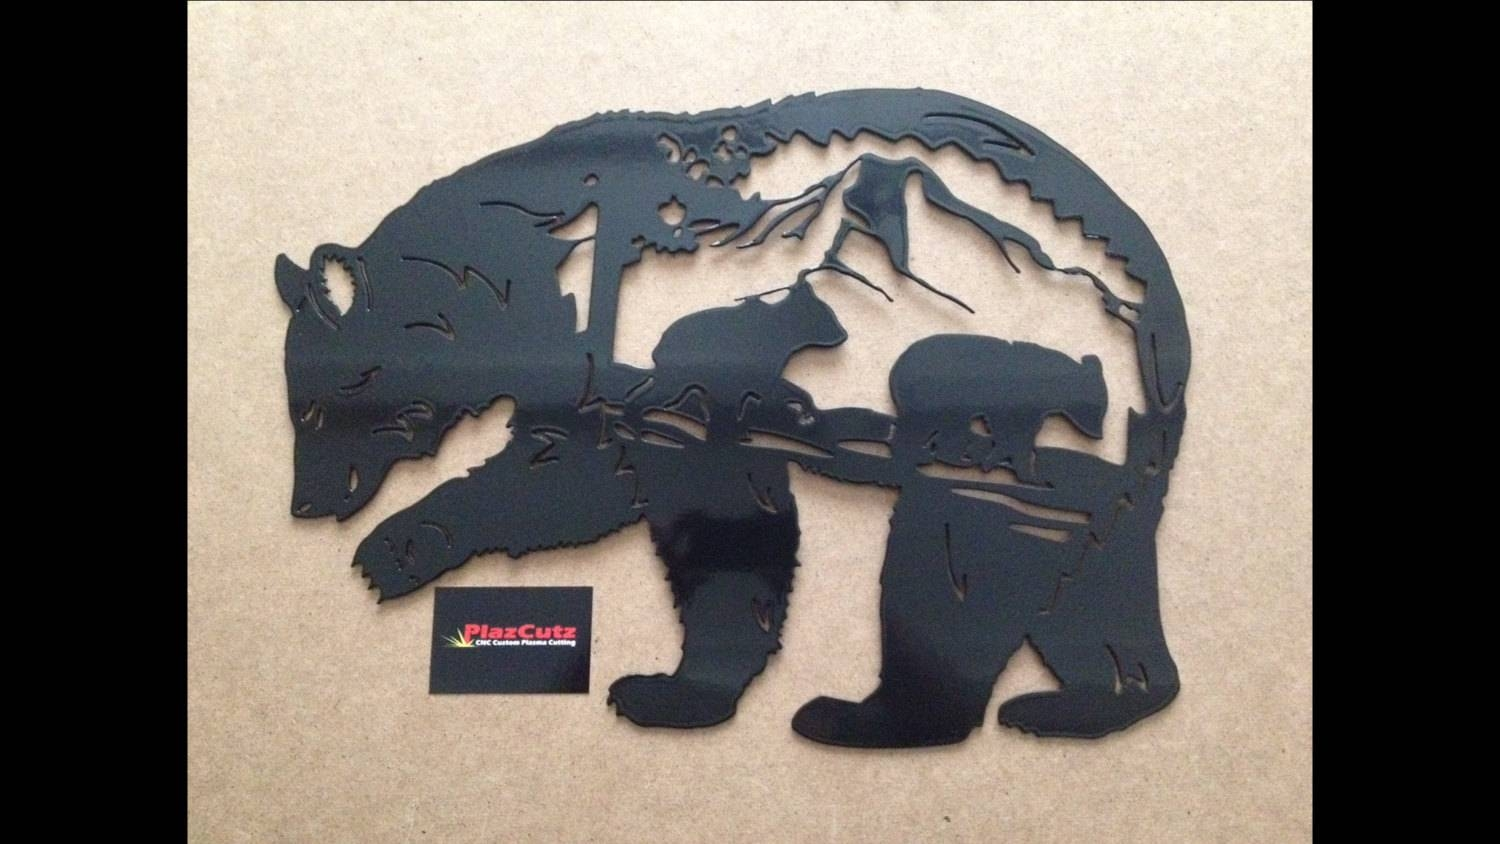 Bear Scene Metal Wall Art Plaque Cnc Plasma Cut And Powder With Regard To Latest Bear Metal Wall Art (View 3 of 20)